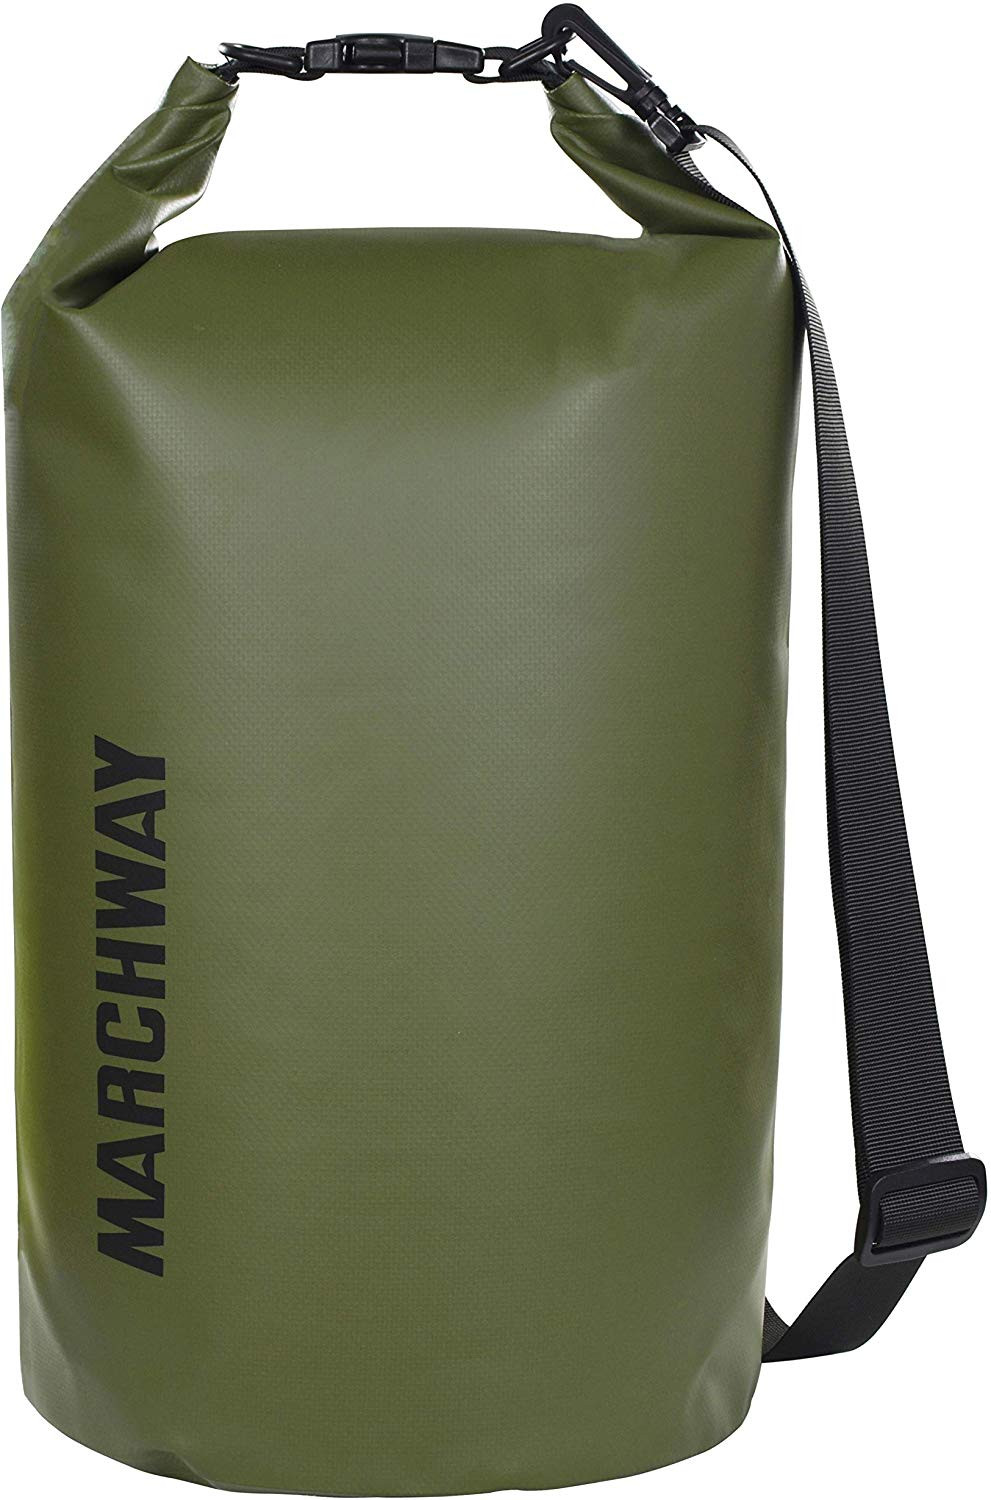 Marchway floating dry bag green color